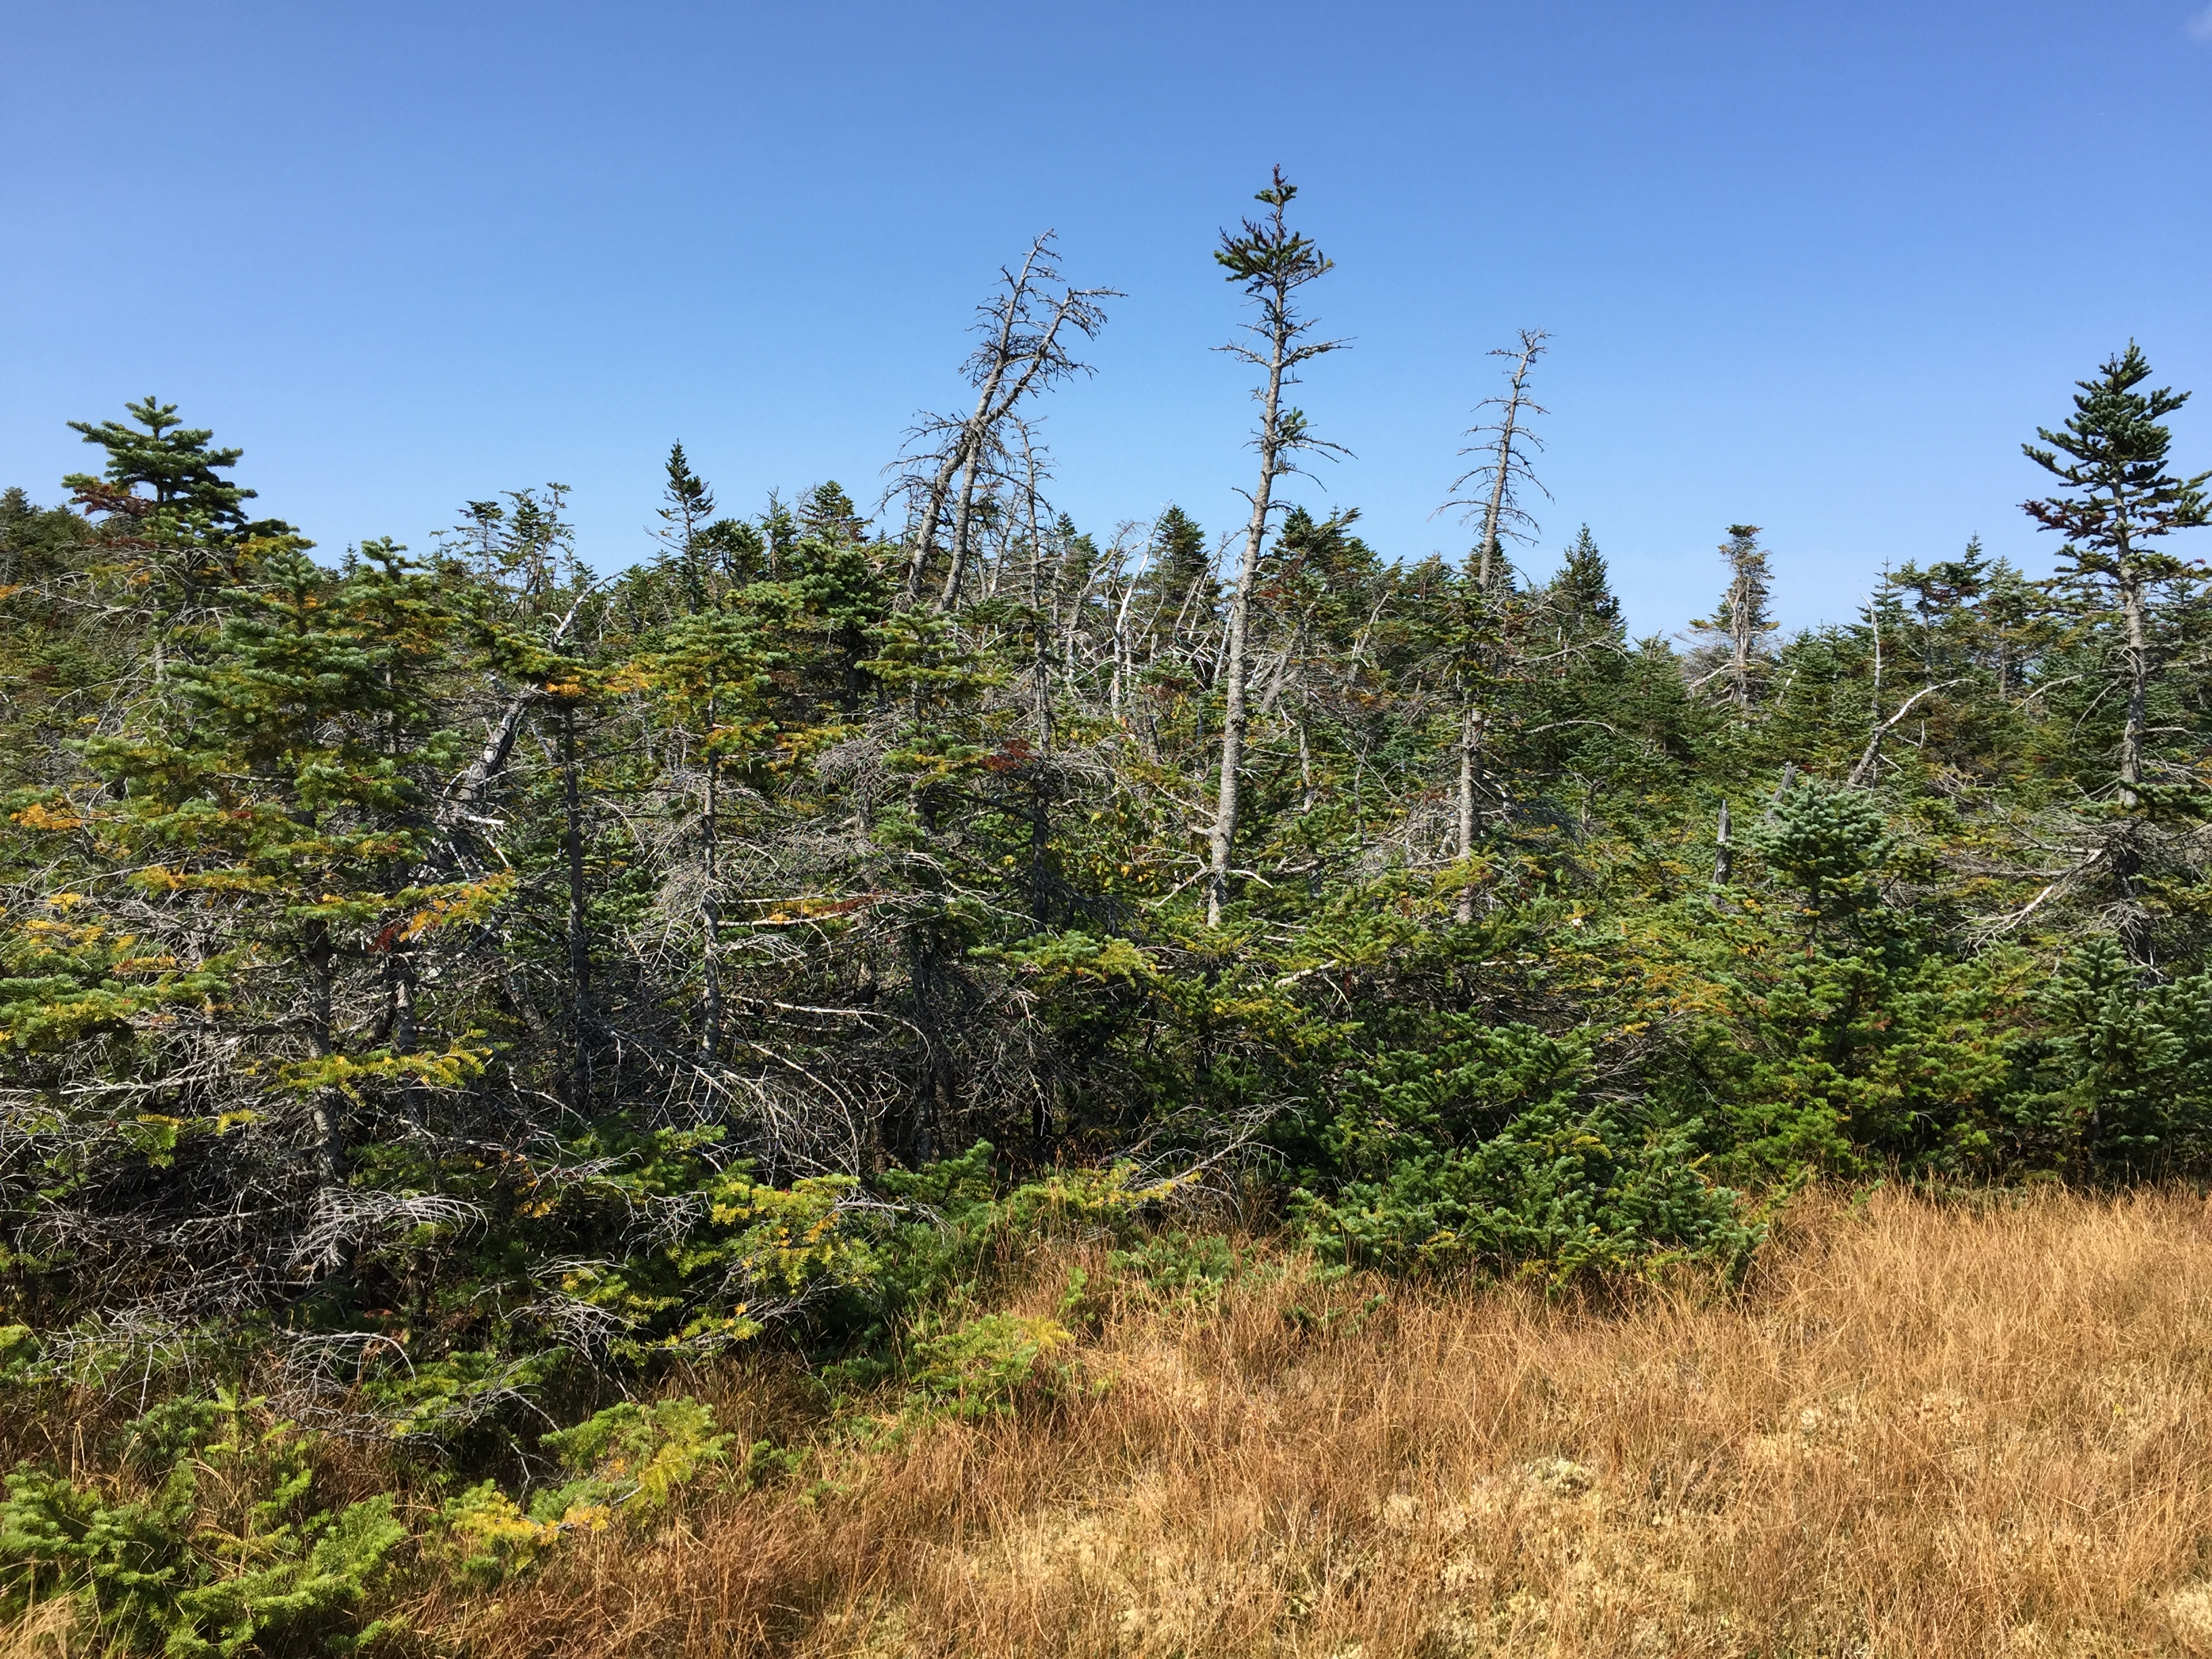 New york essex county keene - File 2016 09 04 13 32 32 Stunted Forest Along The Van Hoevenberg